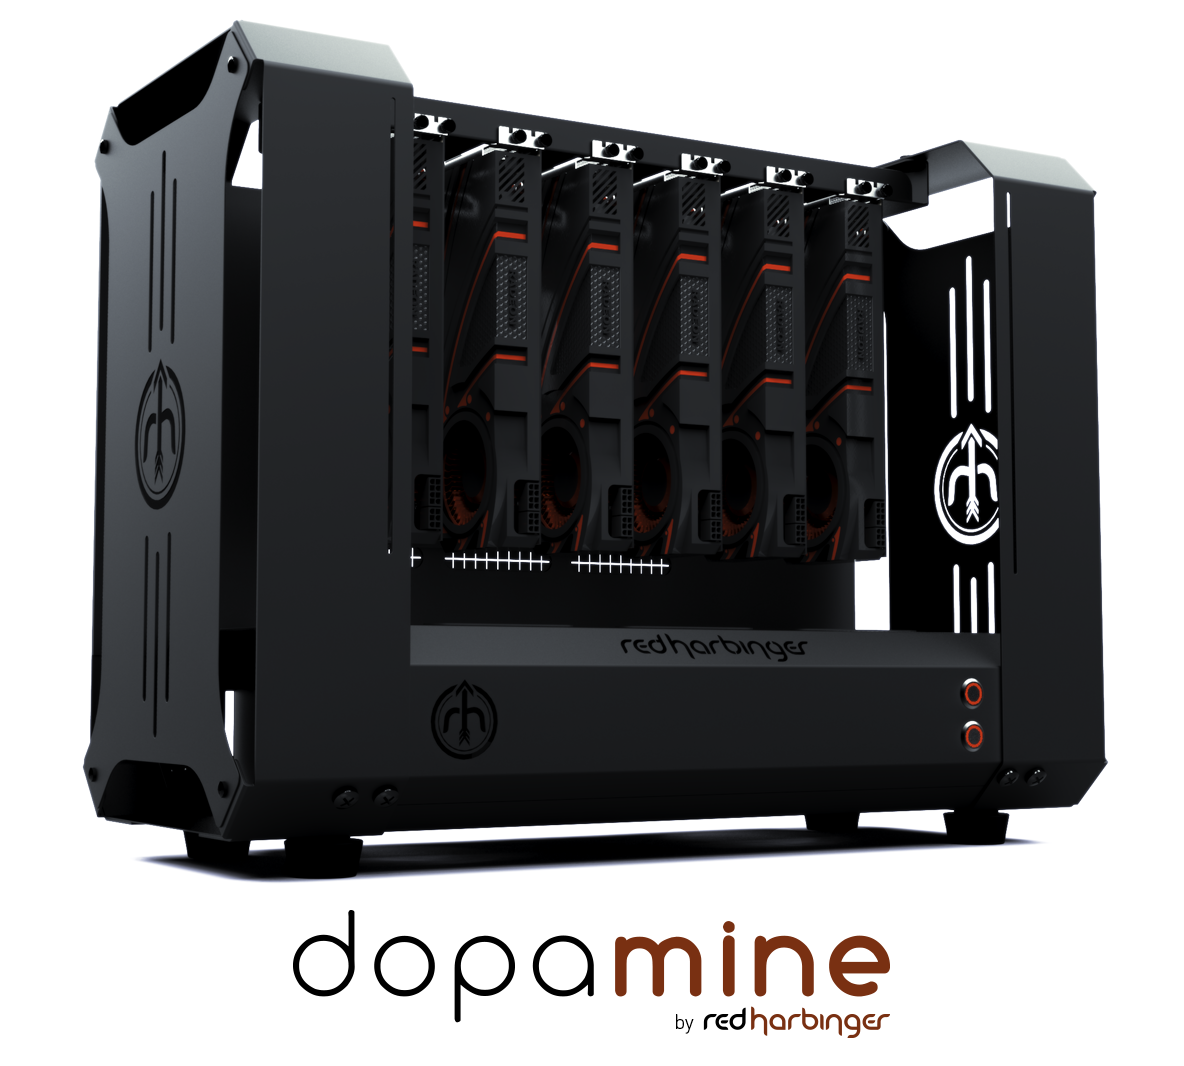 Dopamine Cryptocurrency Mining Case By Red Harbinger